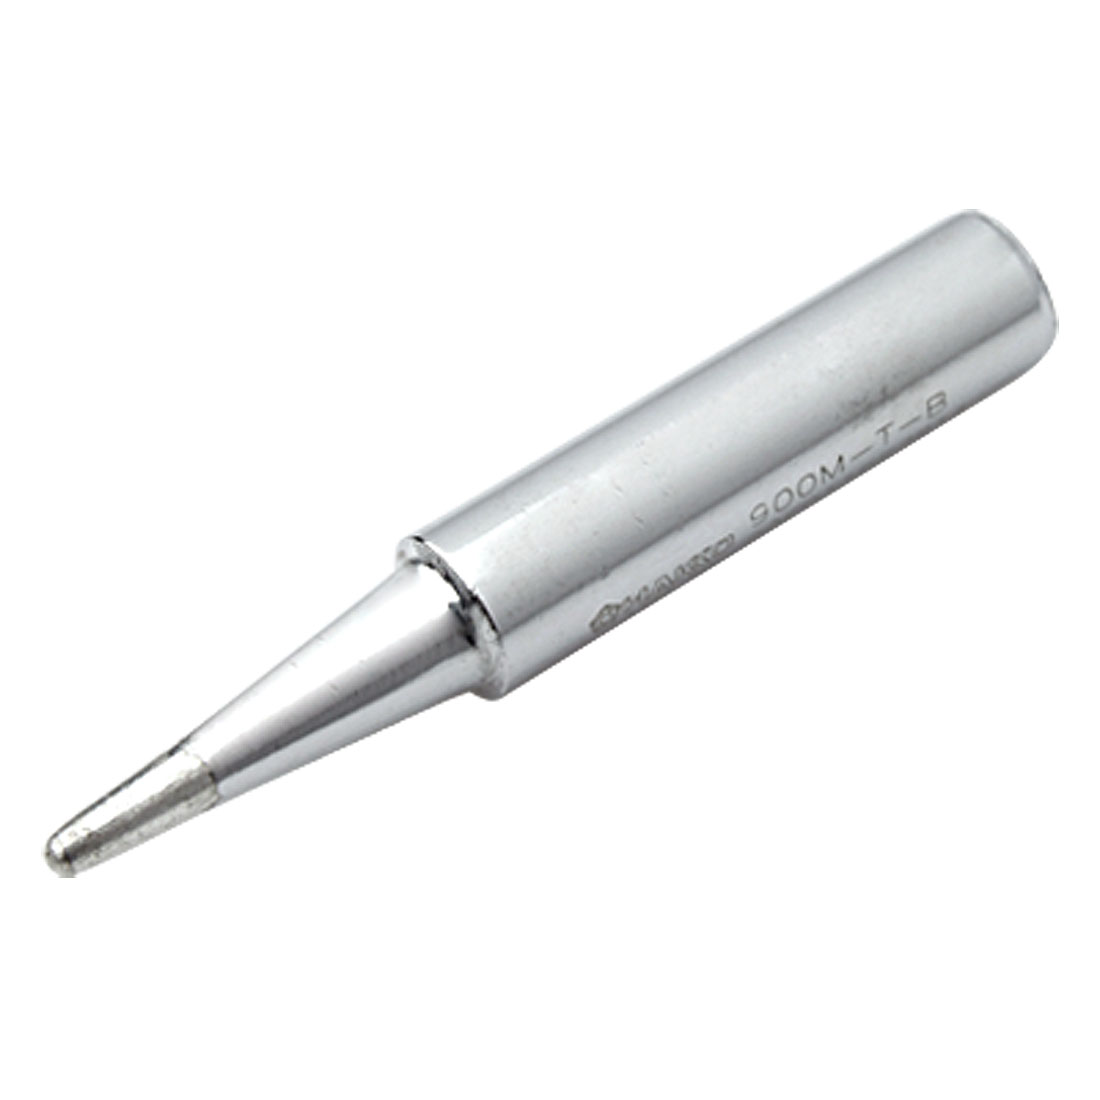 Solder Tip Replaceable Soldering Iron 900M-T-B